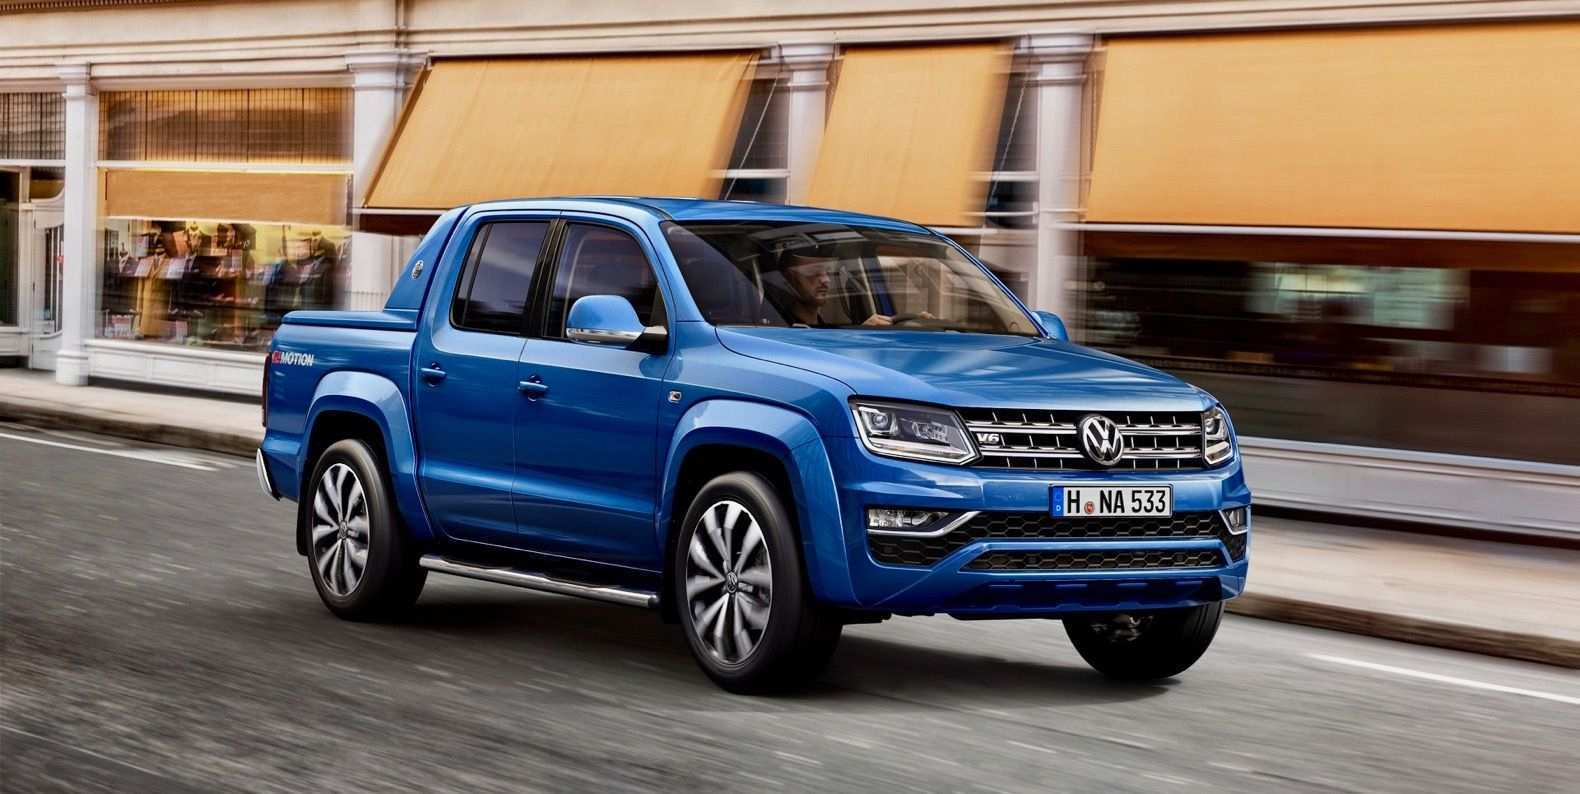 49 Gallery of The Volkswagen 2019 Pickup Specs And Review Redesign for The Volkswagen 2019 Pickup Specs And Review